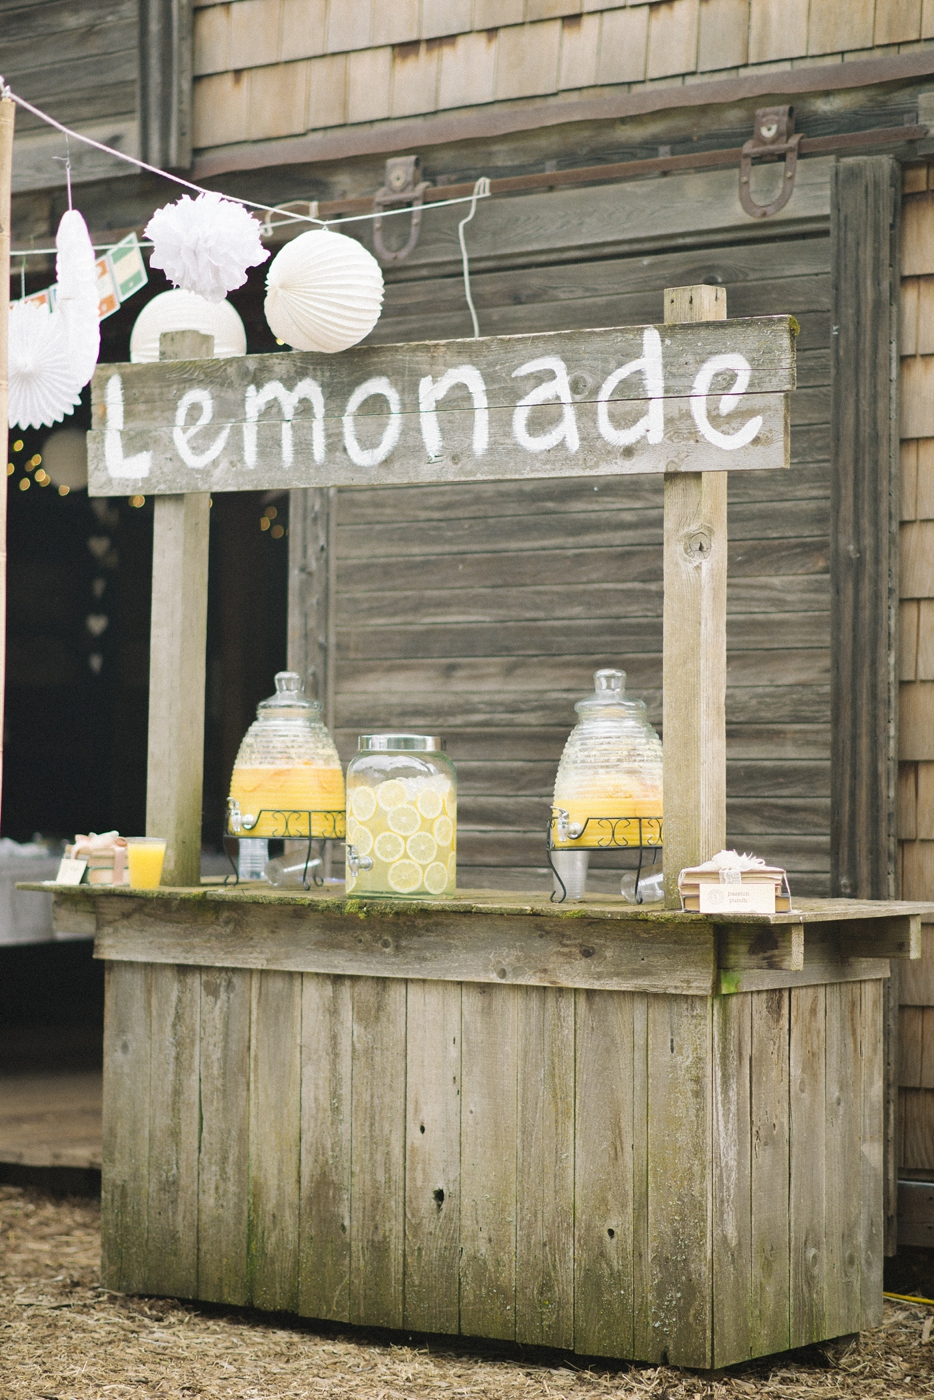 Dorris-Ranch-Springfield-Oregon-Wedding-Nature-Rustic-Barn-Portland-Natural-Light-Photographer-Shelley-Marie-Photography-lemonade-stand-4